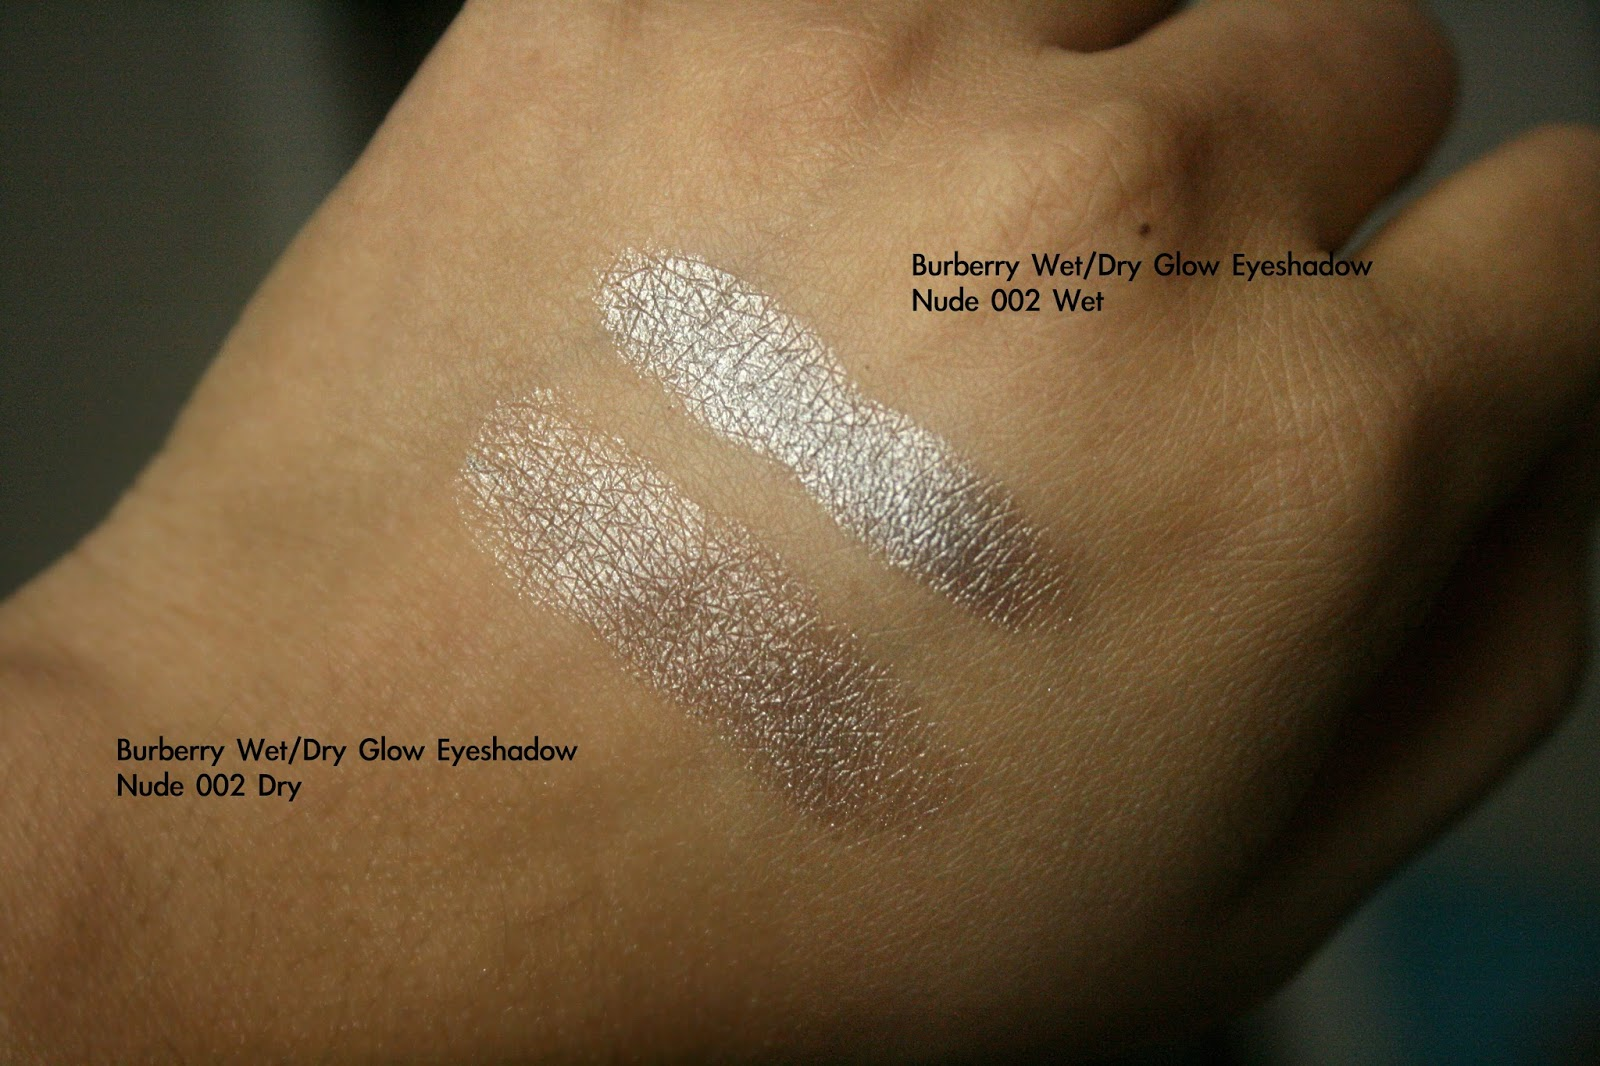 Burberry Wet & Dry Glow Eye Shadow in Nude 002 Swatch